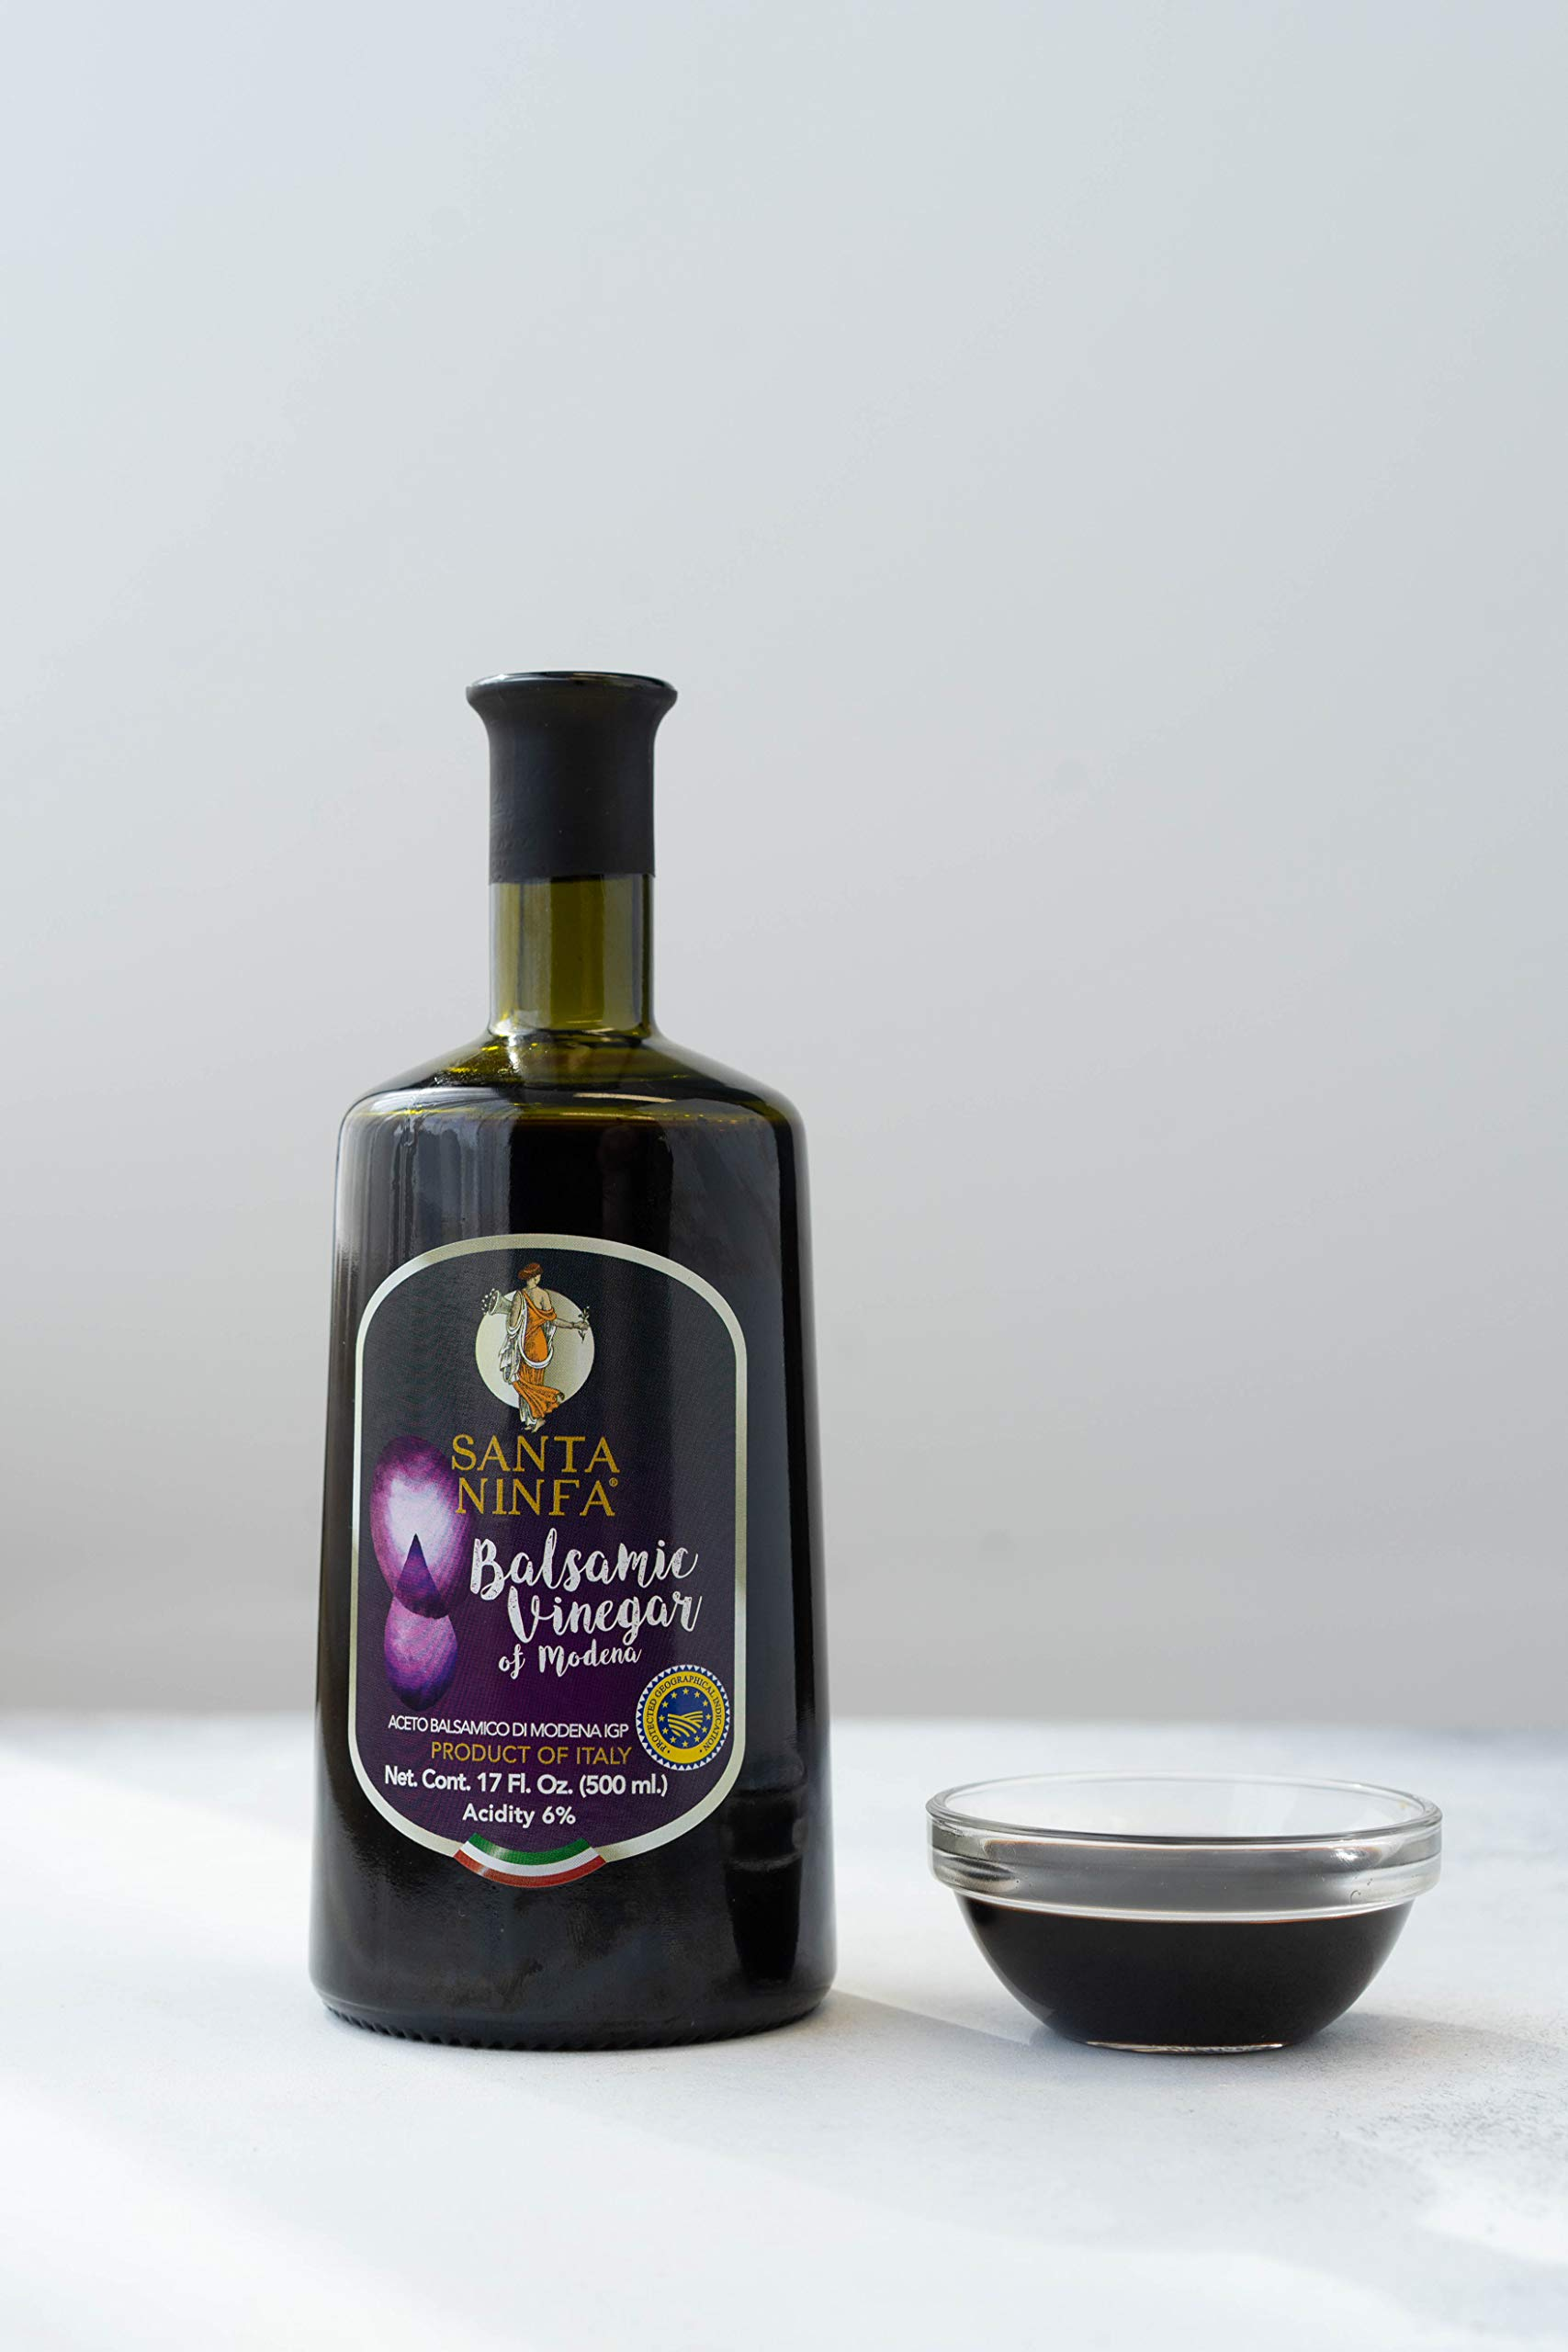 Santa Ninfa Balsamic Vinegar of Modena IGP, 17 Fl Oz Glass Bottle, (Pack of 2) 8 Ships in Amazon Certified Frustration-Free Packaging Pack of two Balsamic Vinegar of Modena, Italy, 17 oz Glass Bottles This Balsamic vinegar is matured in wooden casks to achieve a complex flavor balancing sweetness and acidity.